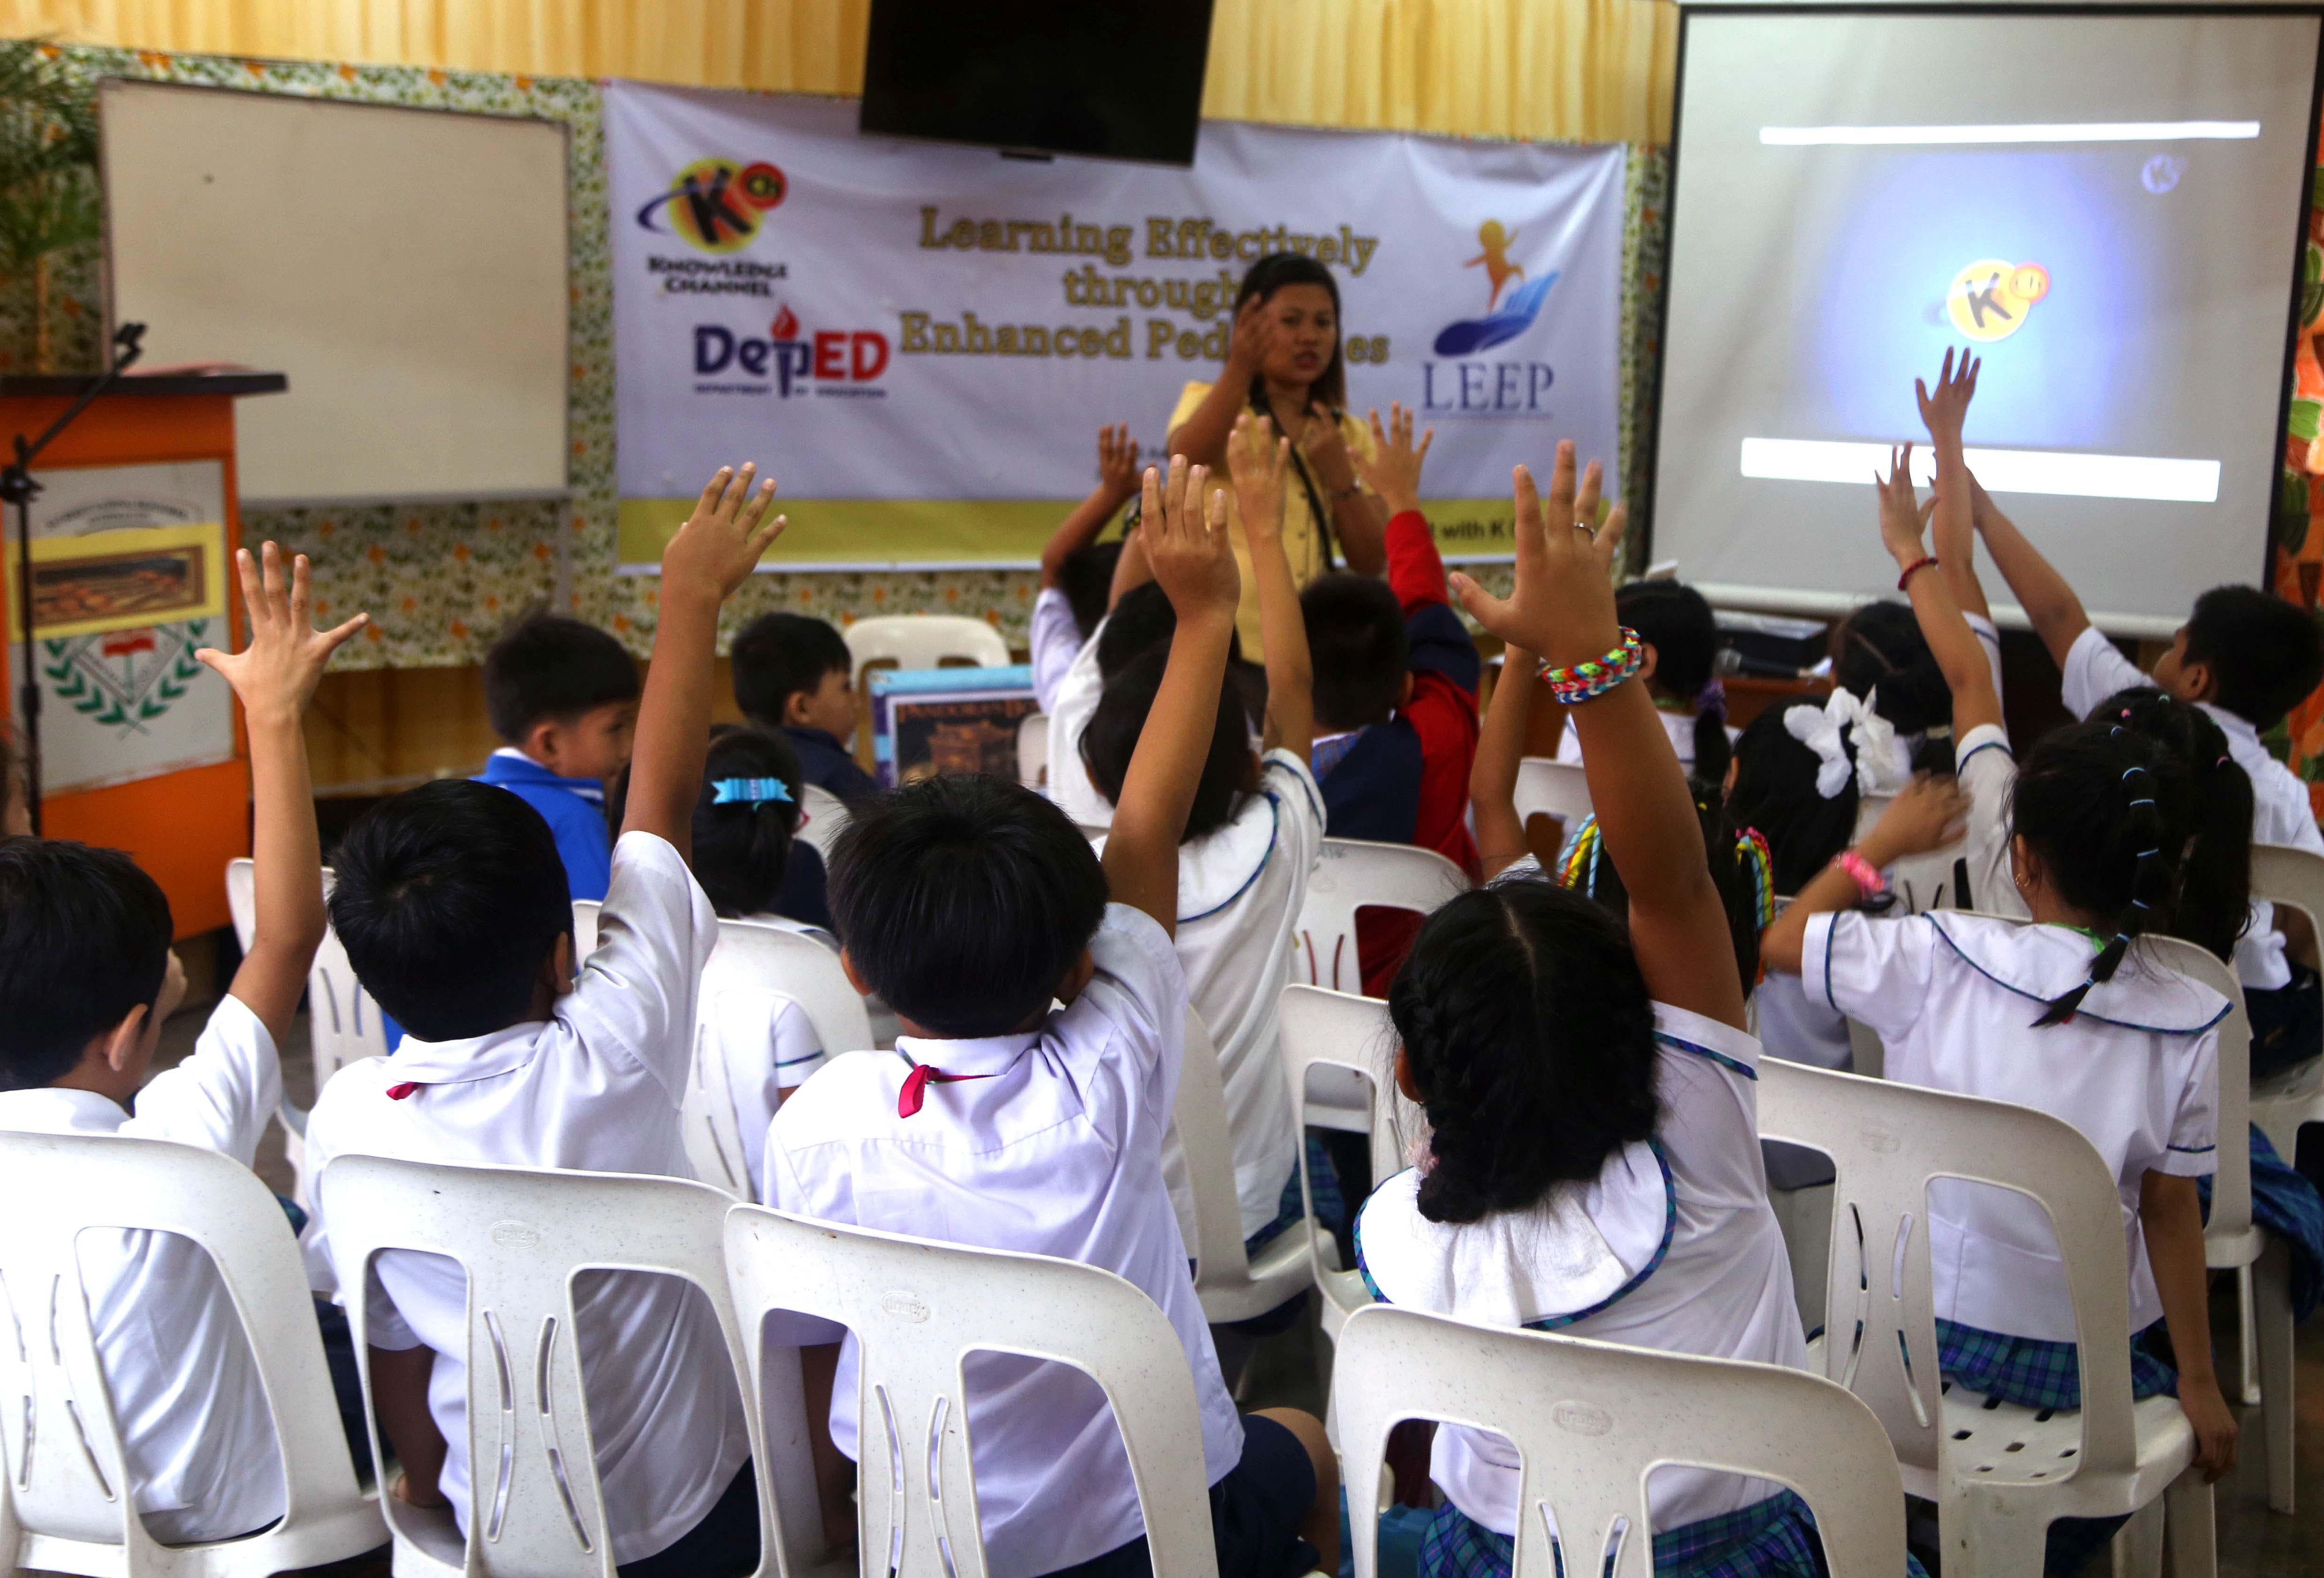 A teacher from Claudio Sandoval Elementary School in Coron, Palawan attests that her class became more active and engaged when she applied what she learned from LEEP training